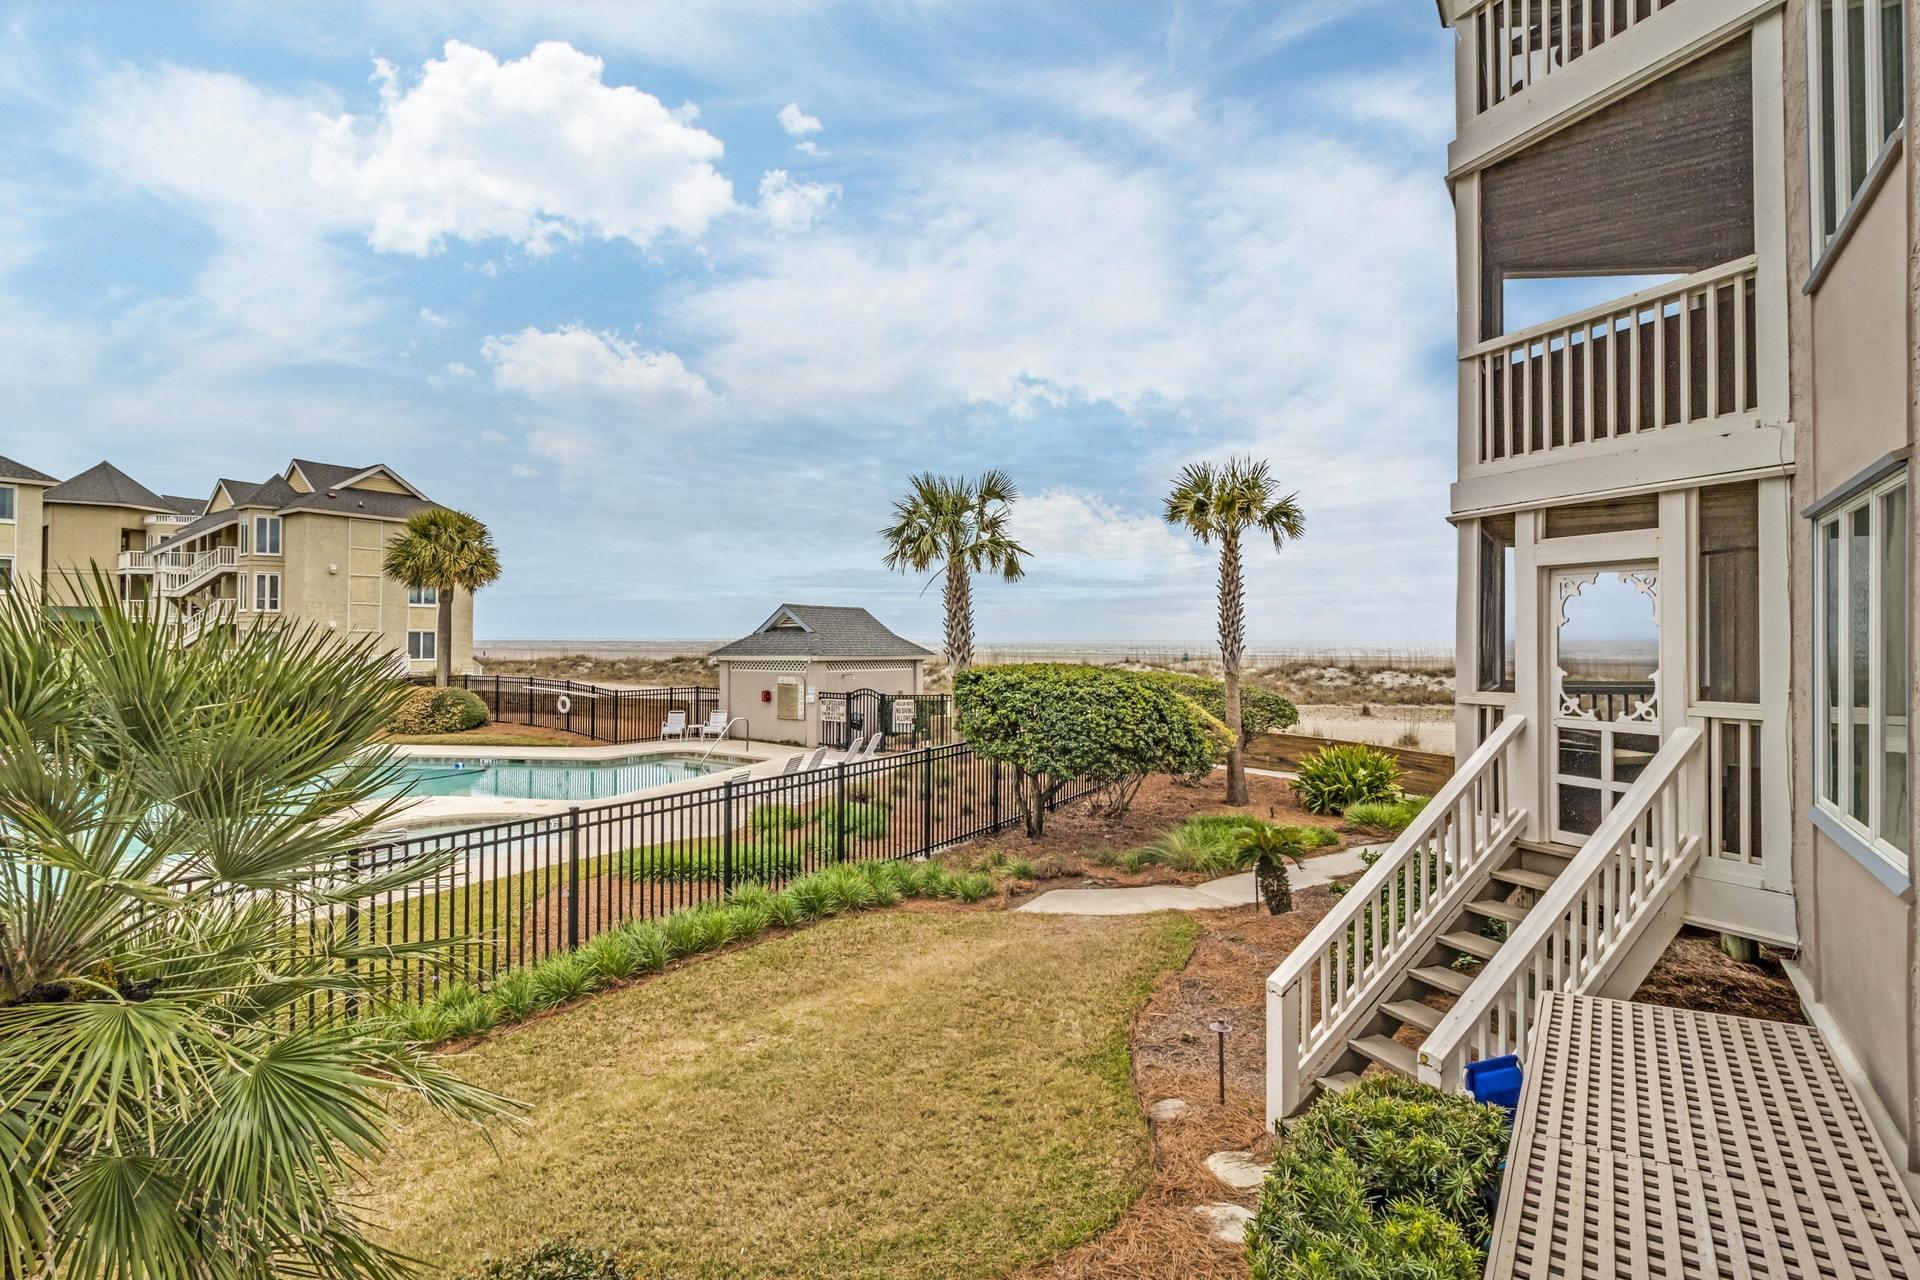 Wild Dunes Resort Homes For Sale - 102 I Tidewater, Isle of Palms, SC - 4